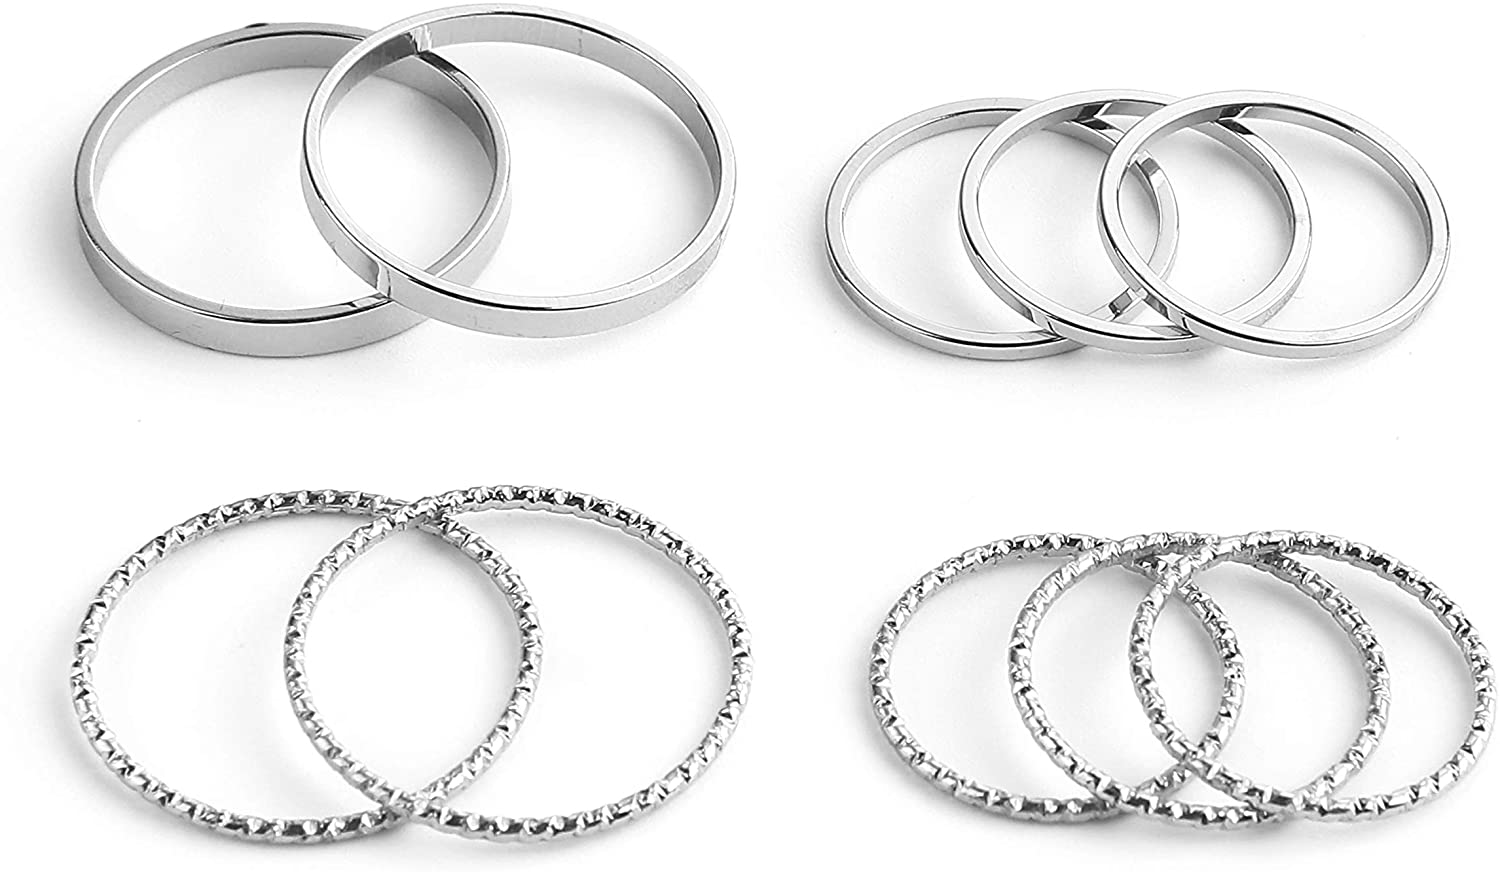 SOTOLAN 10 PCS Simple Bohemian Crystal Joint Knuckle Ring Sets Finger Rings Midi Ring Set Stackable (Silver)